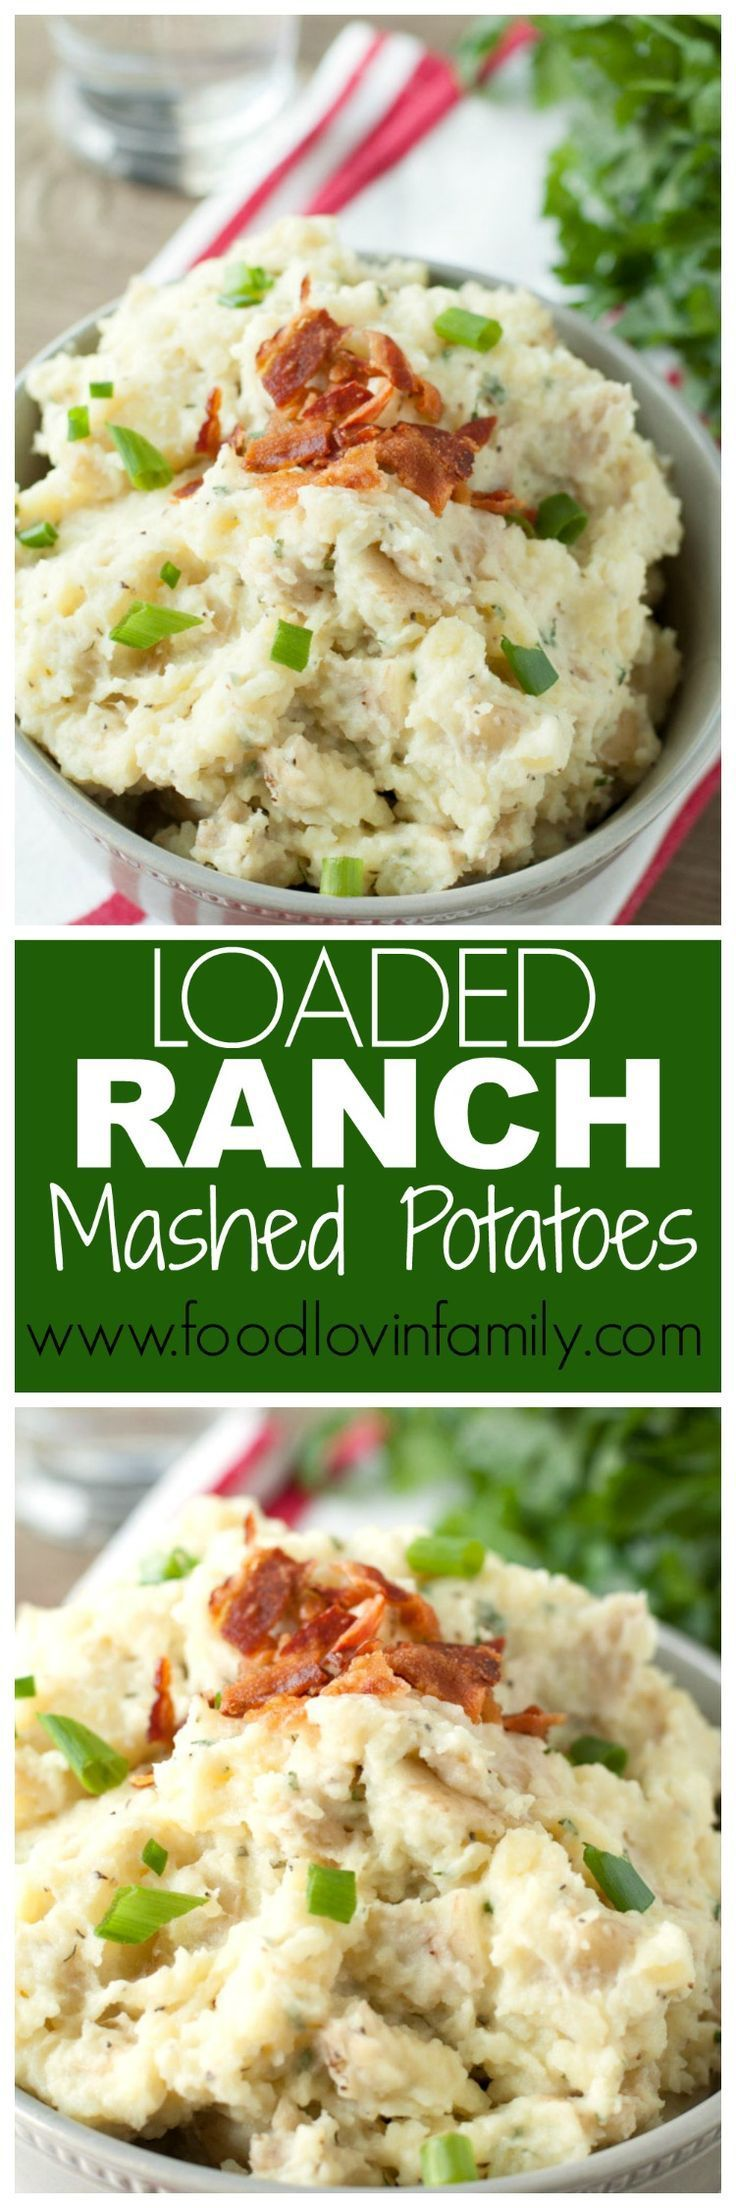 Loaded Ranch Mashed Potatoes |The perfect side dish for any occaion| Thanksgiving side dish|Christmas side dish| Easter side dish| mashed potatoes| ranch mashed potatoes| Loaded potatoes http://www.foodlovinfamily.com/loaded-ranch-mashed-potatoes/